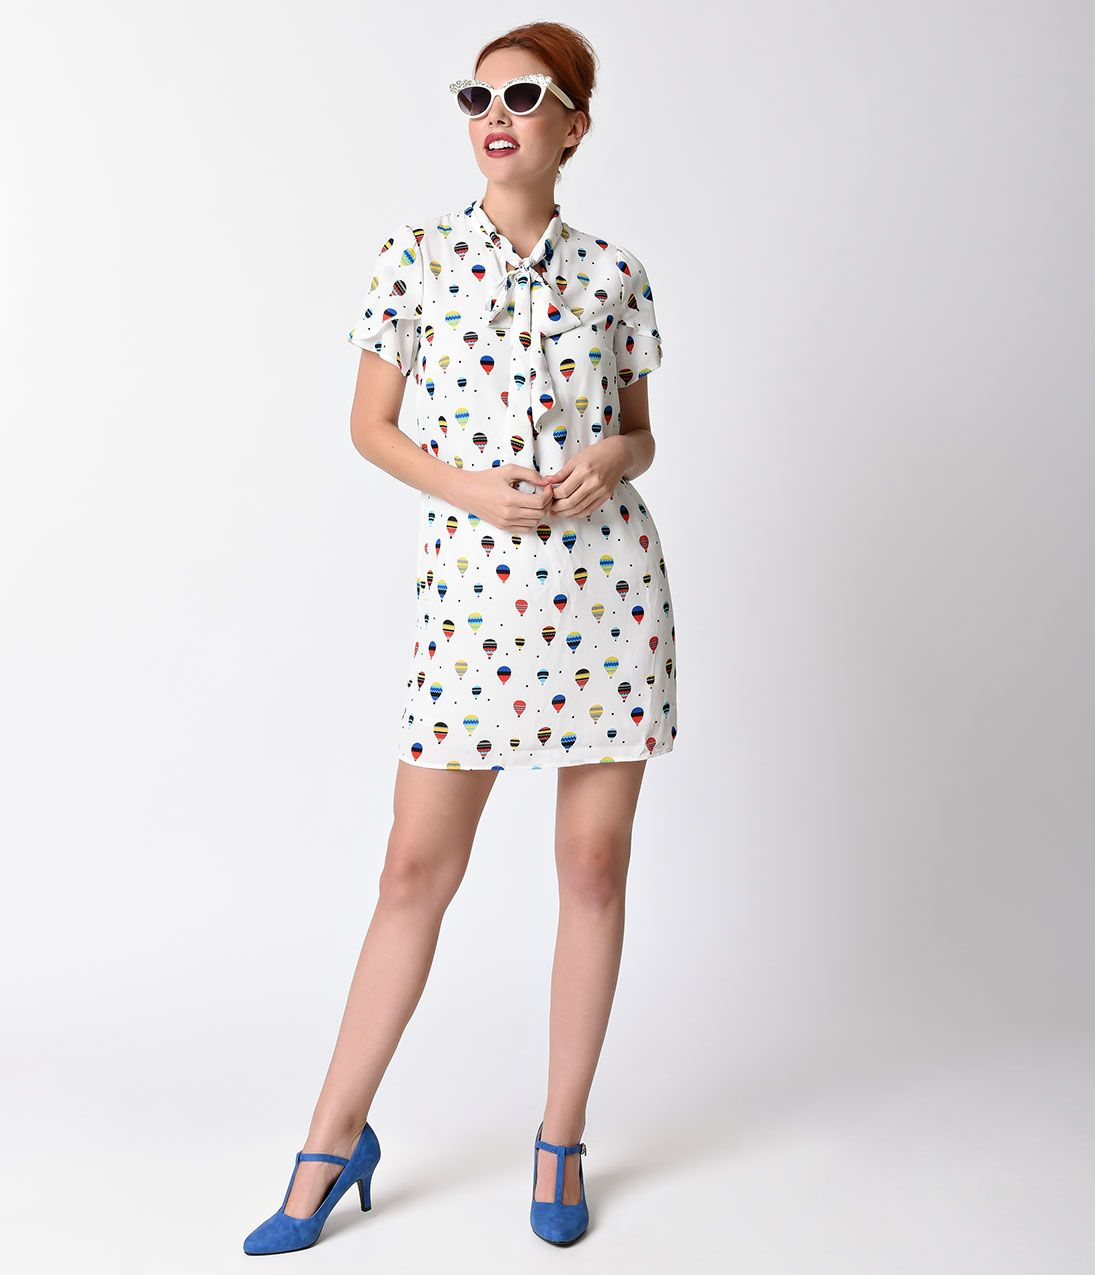 1960s Style Dresses- Retro Inspired Fashion   1960s style ...